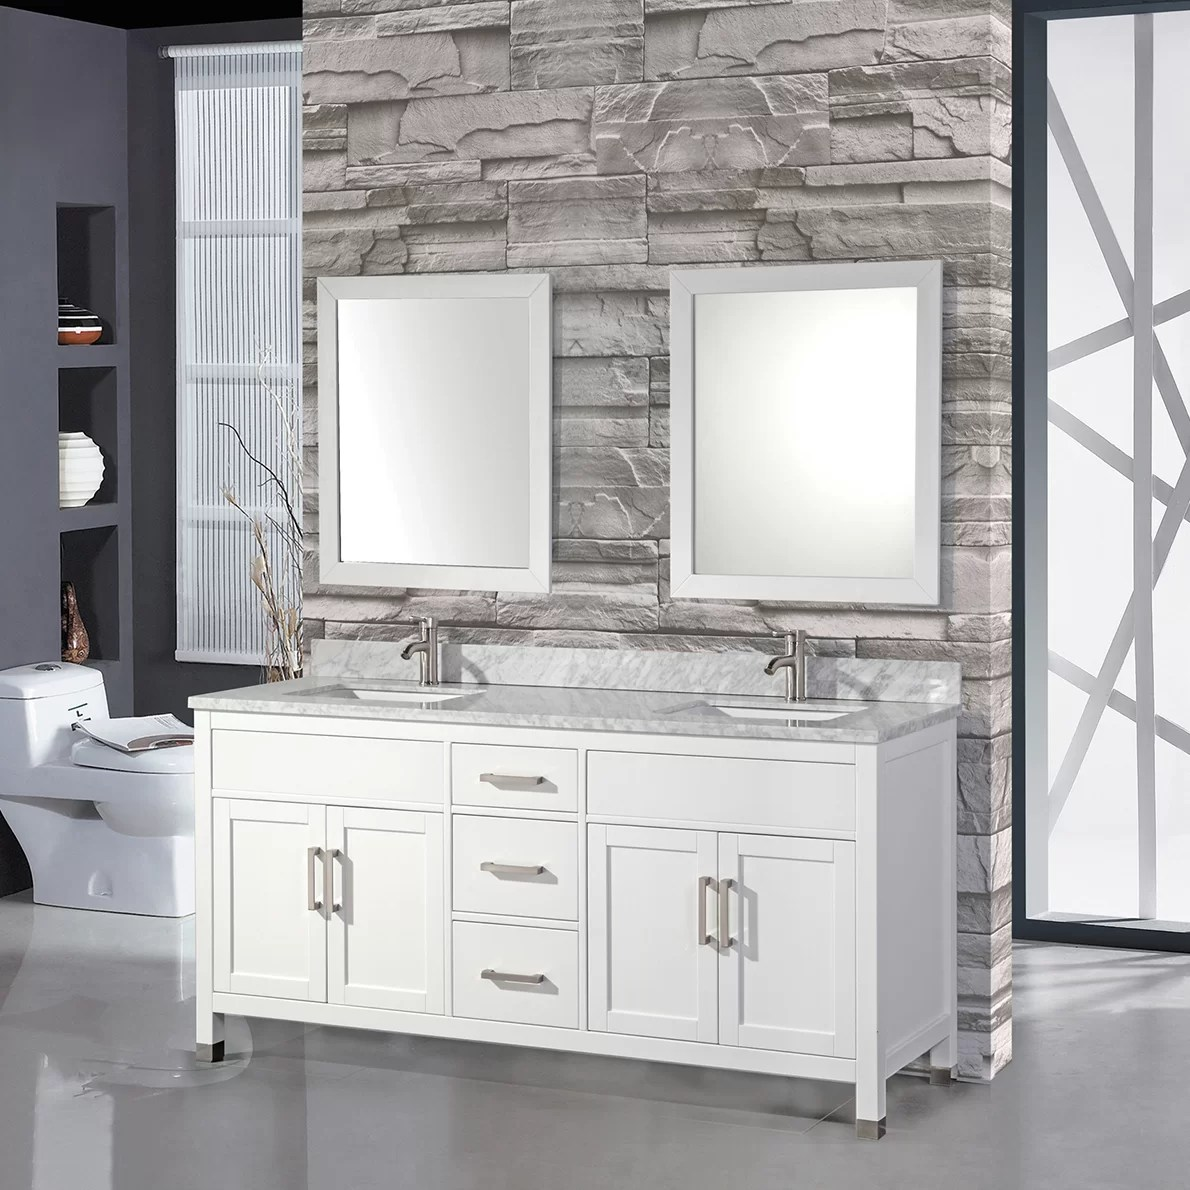 Mtdvanities Ricca 84quot Double Sink Bathroom Vanity Set With